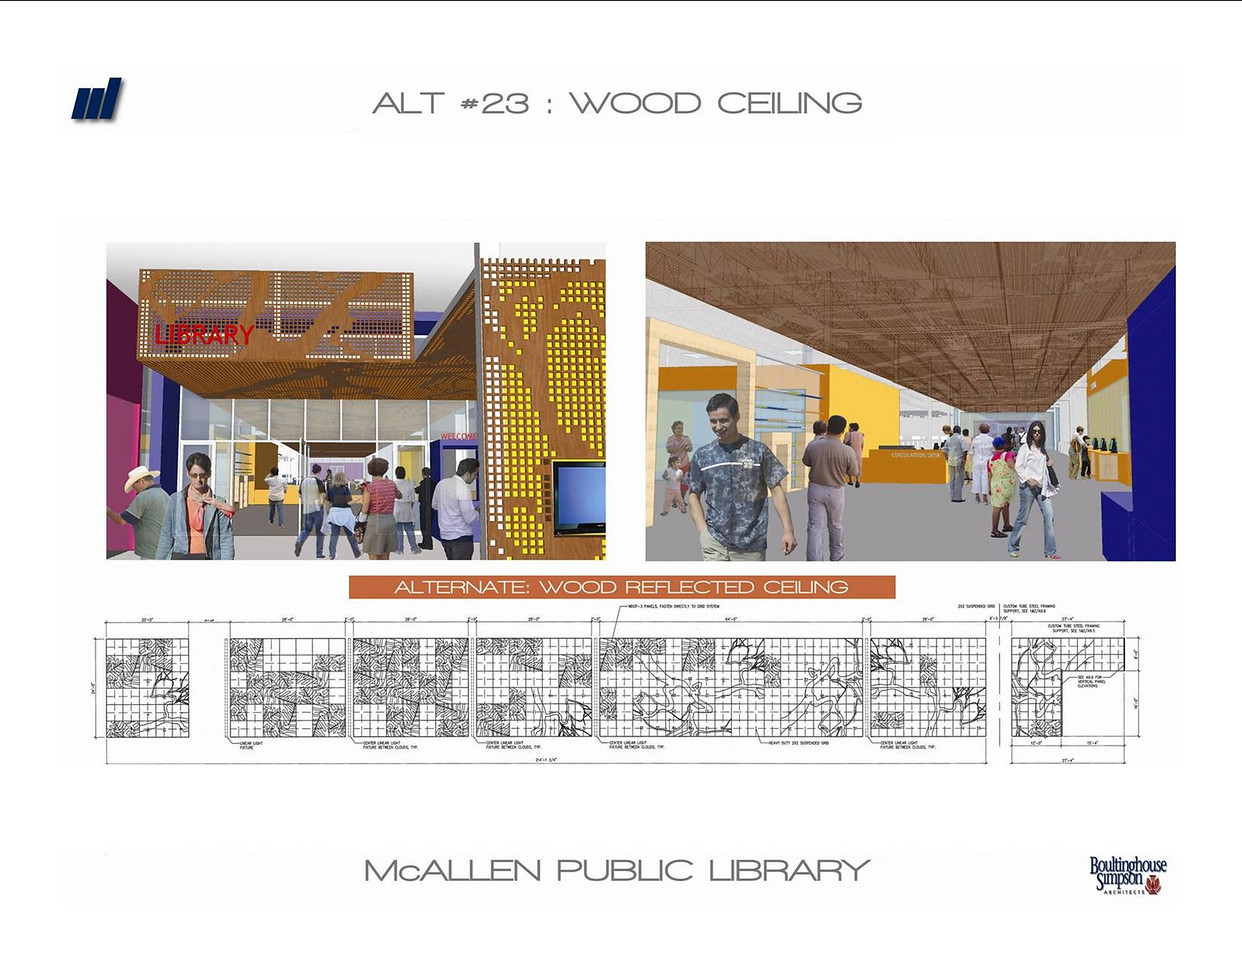 Interior view of the entrance to the new Main Library, focusing on the custom-designed ceiling panels. The wood-reflected ceiling is the approved design.